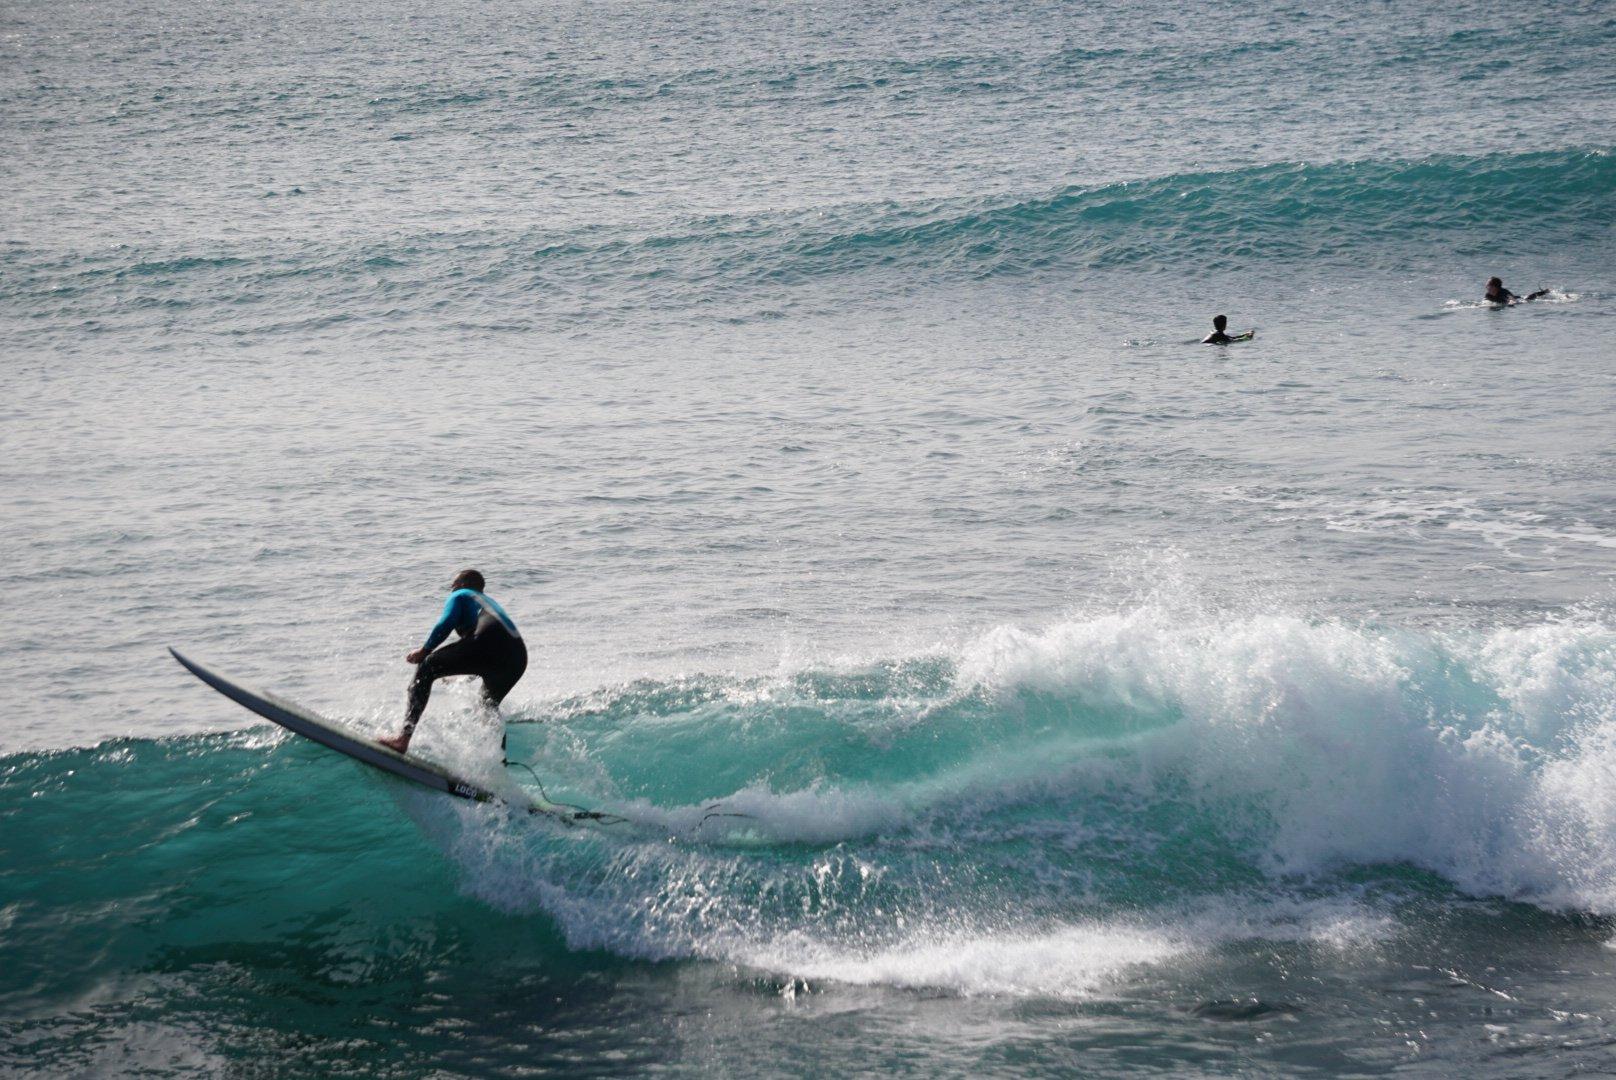 Loco's SUP Surfing Review of Las Americas Tenerife